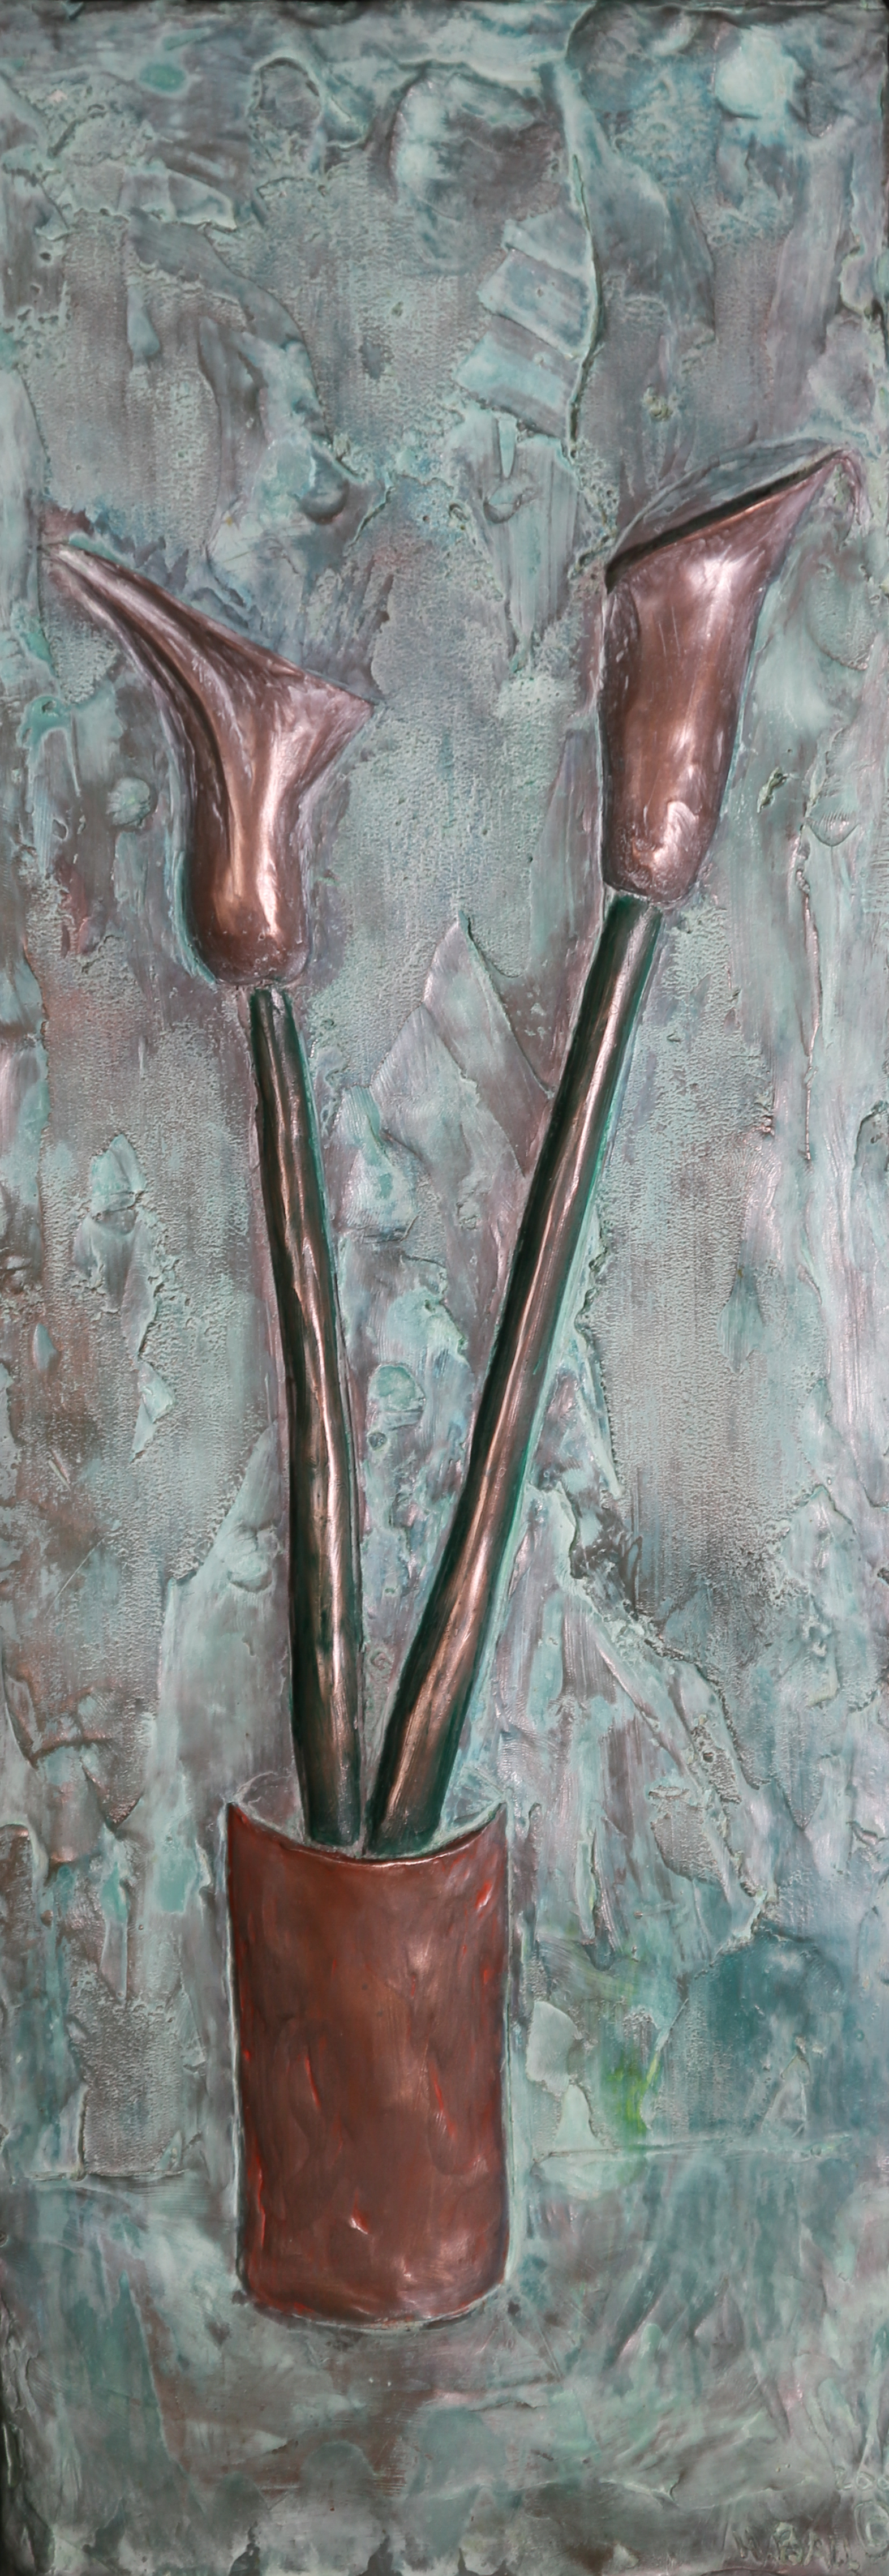 Calla Lilies (2001) FMG Bronze, Edition: 30, 21.5x7.5x1.75in. $950